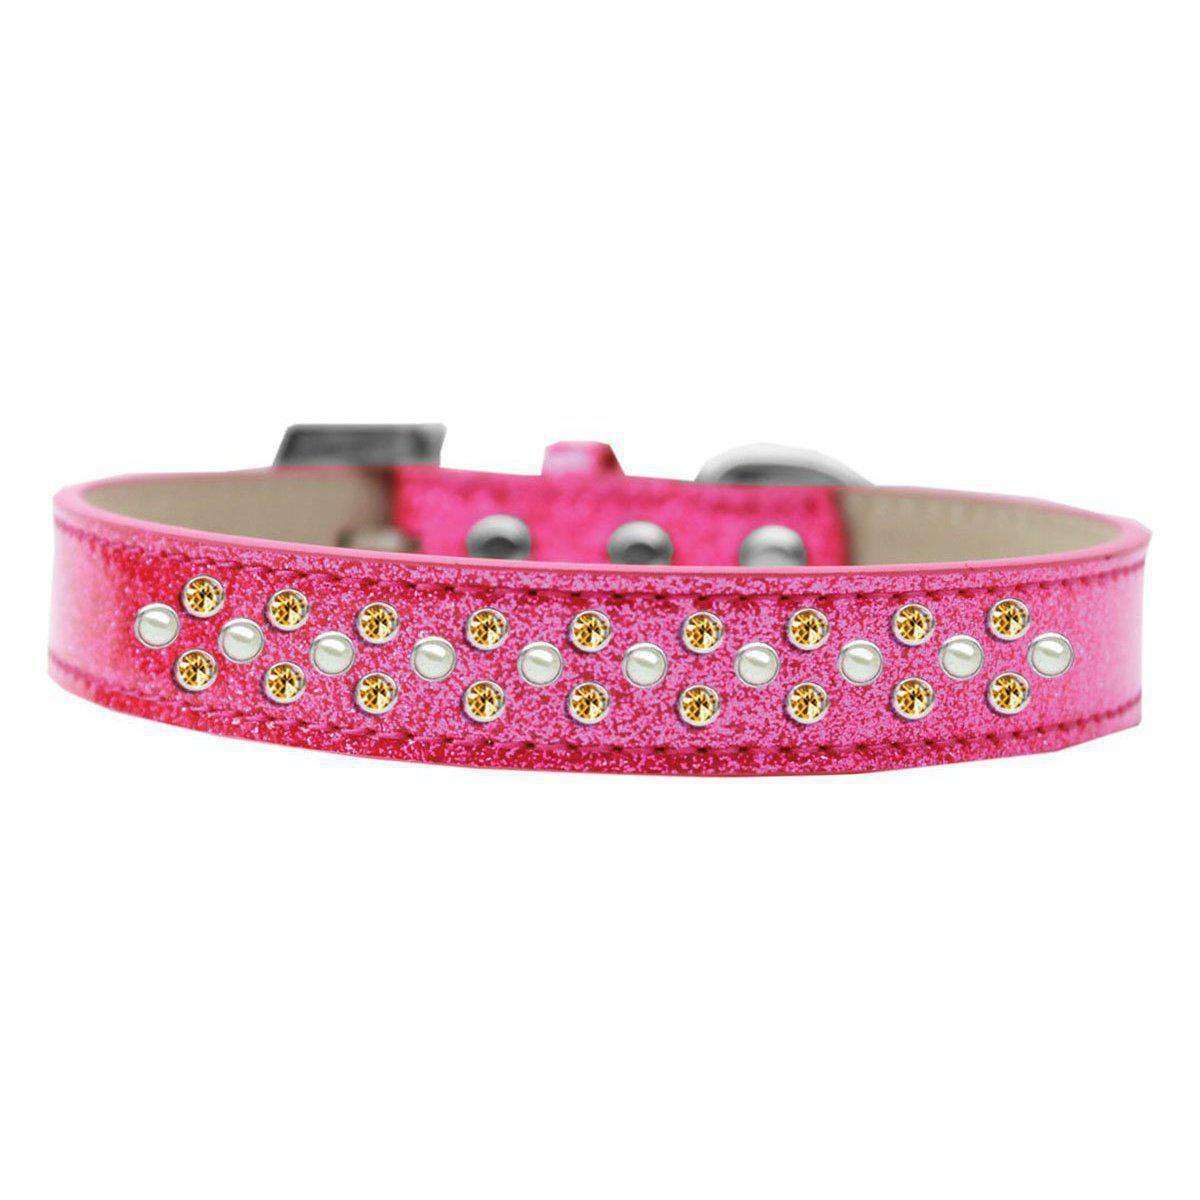 Mirage Pet Sprinkles Ice Cream Adjustable Dog Collar Pearl And Yellow Crystals Size 14 - Pink-Mirage Pet Products-DirtyFurClothing